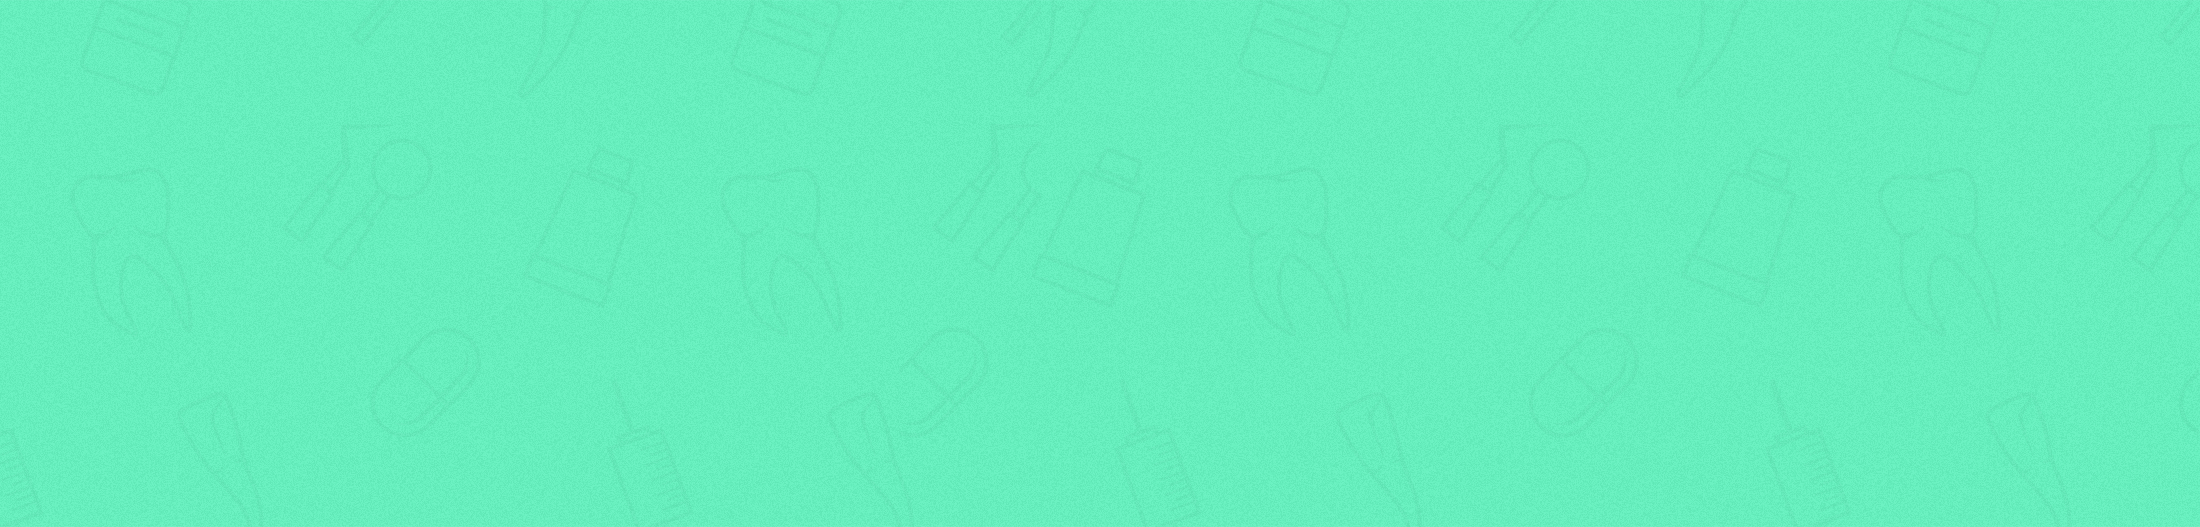 green tooth background